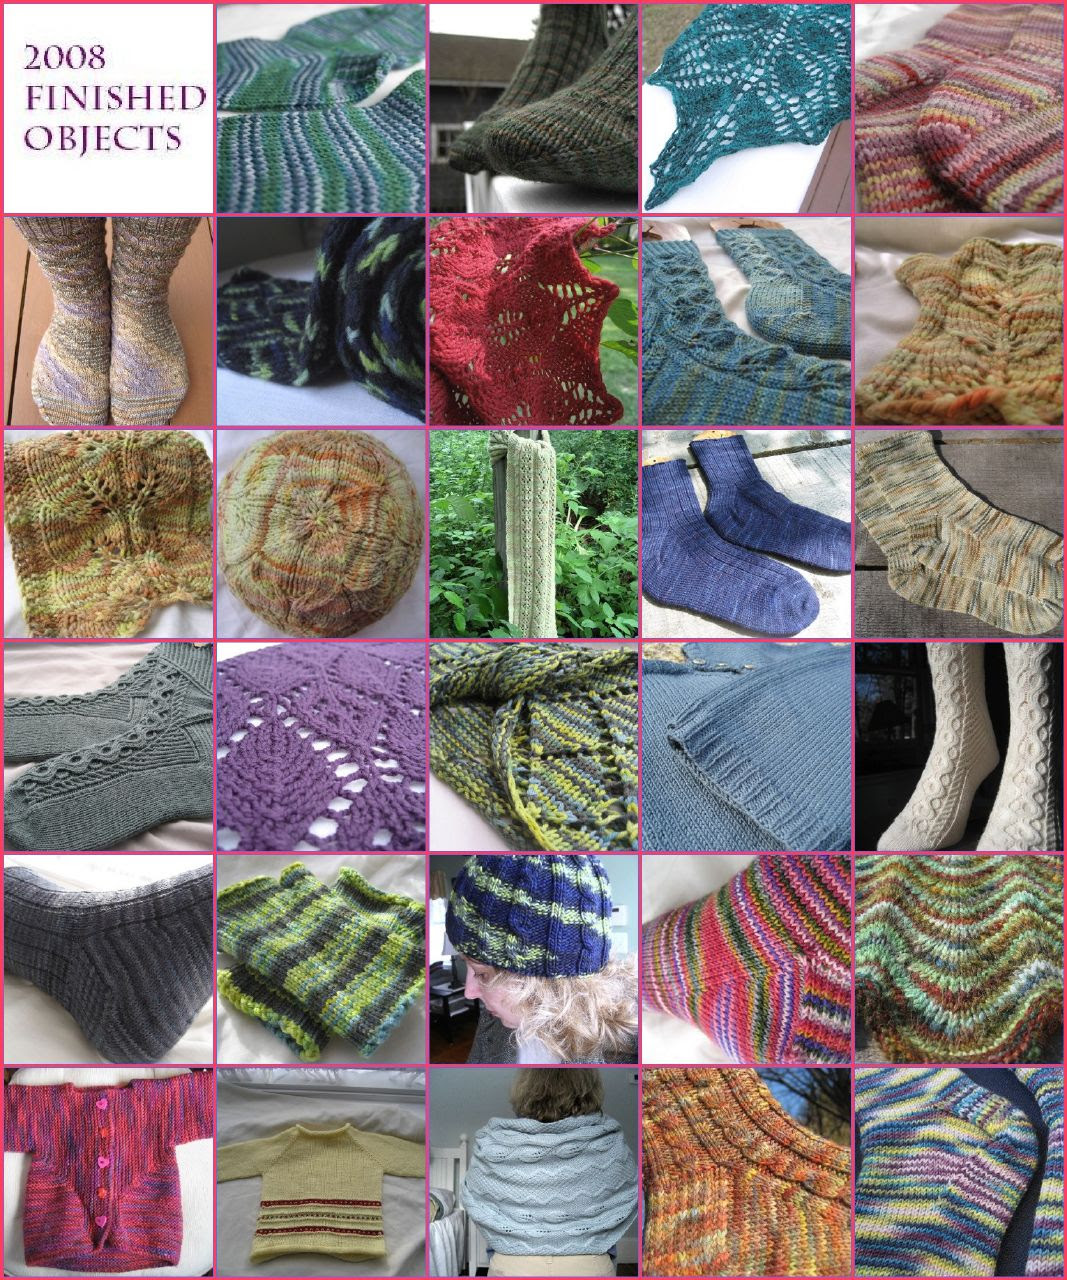 2008 Knitting in Review